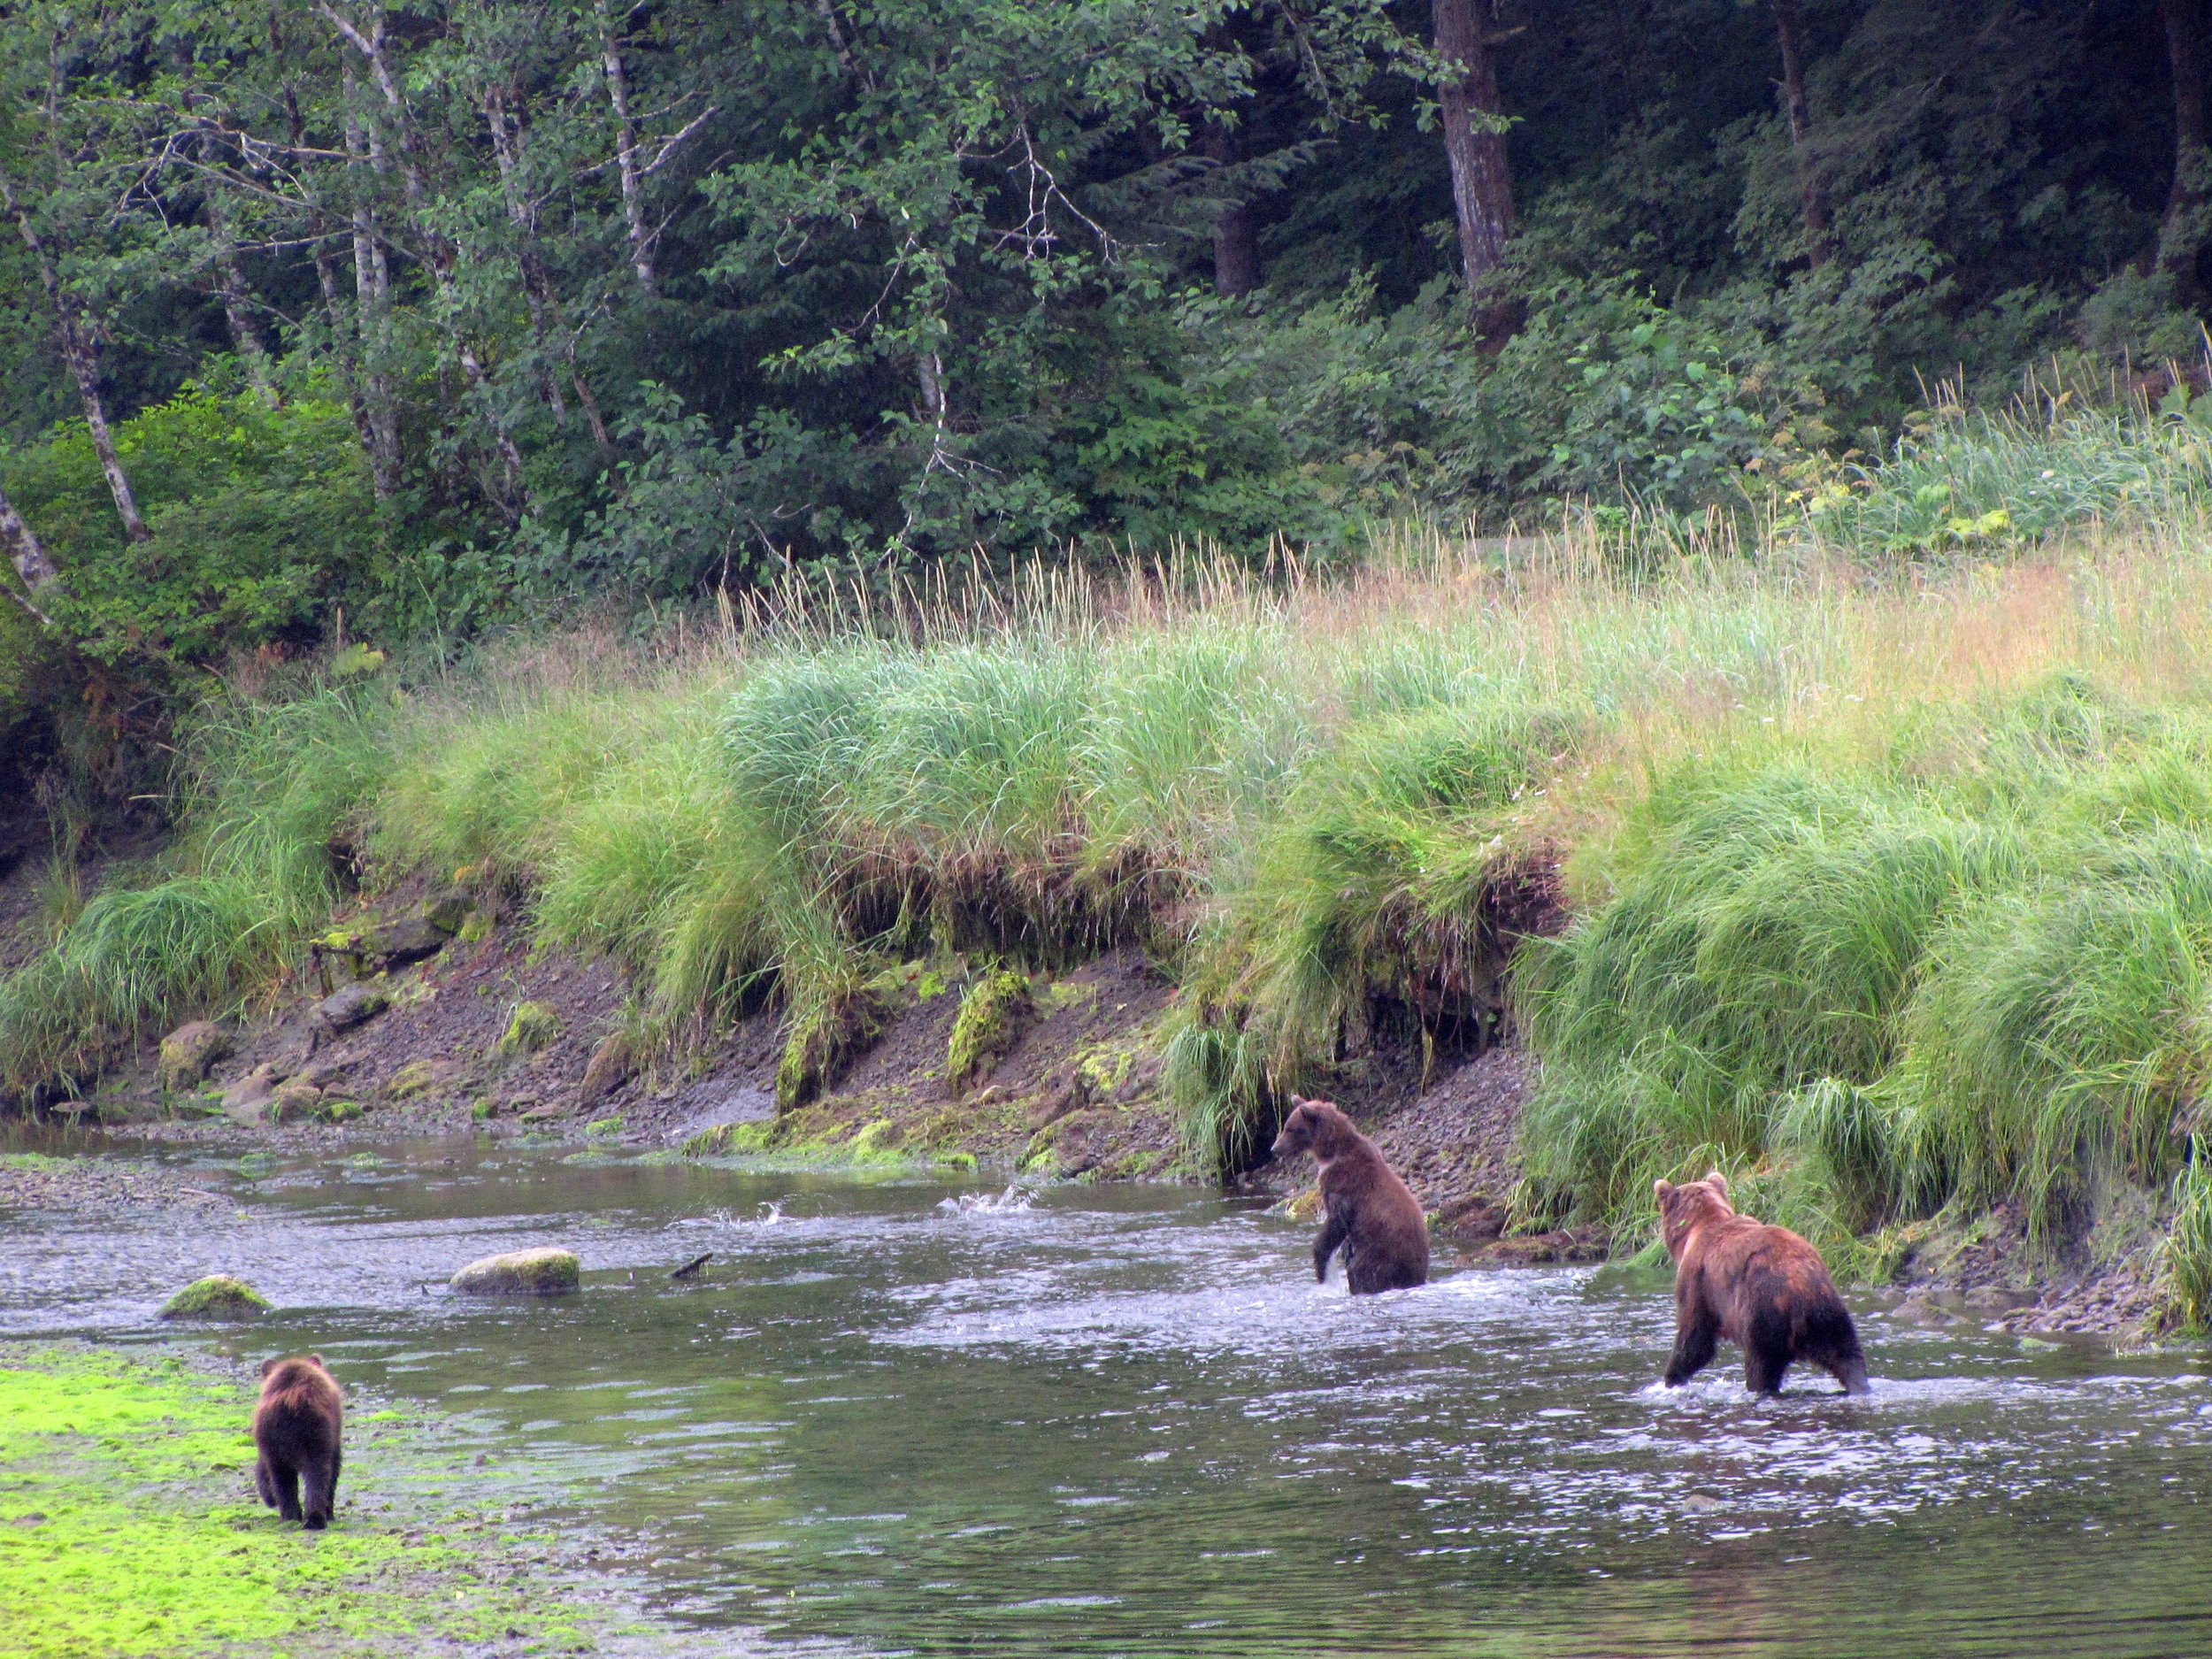 A family of brown bears fishing for pink salmon along a stream in the Tongass National Forest.